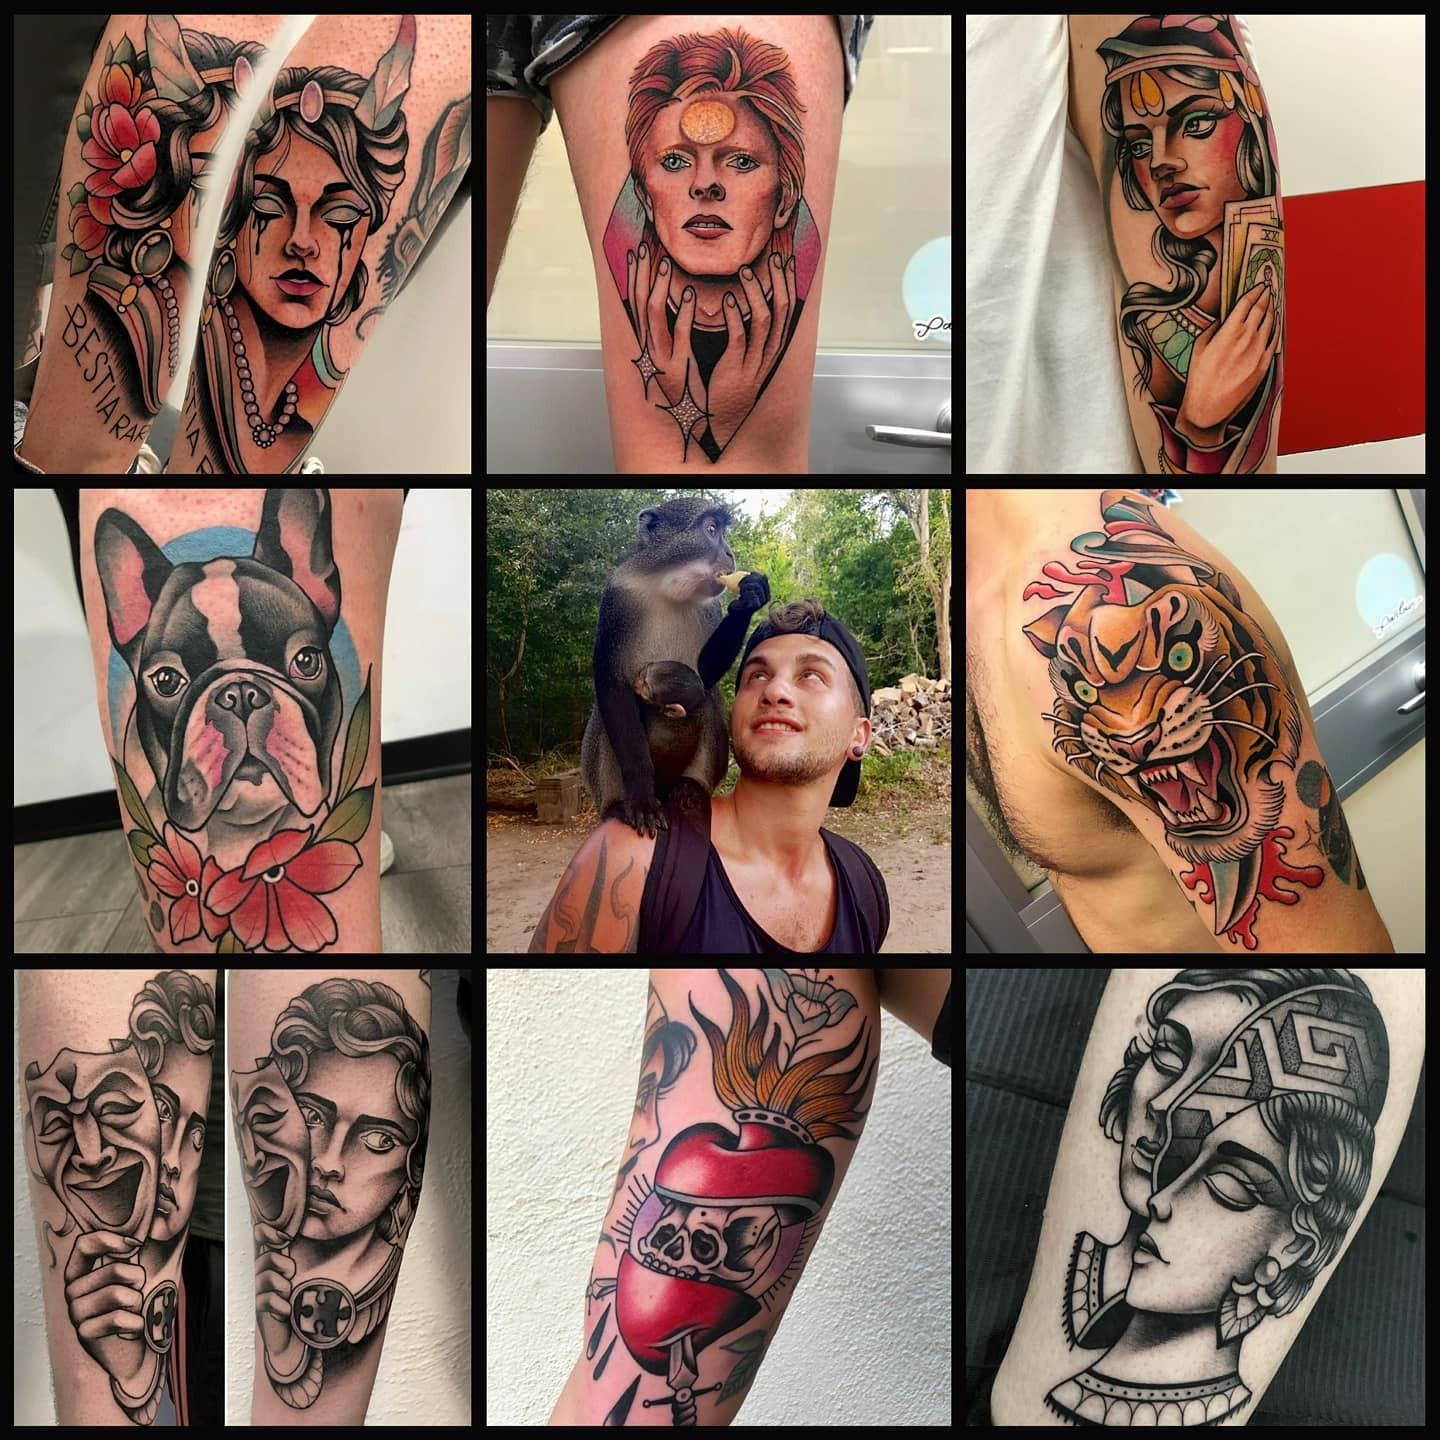 Marco is making his return to Watermelon Tattoo from 20th to 24th October and we couldn't be more excited to see him again! Spaces are already filling up very quickly (one full day remaining and a couple of 3 hour gaps). Marco is versatile in a variety of styles and is more than happy to create a custom piece unique to you!